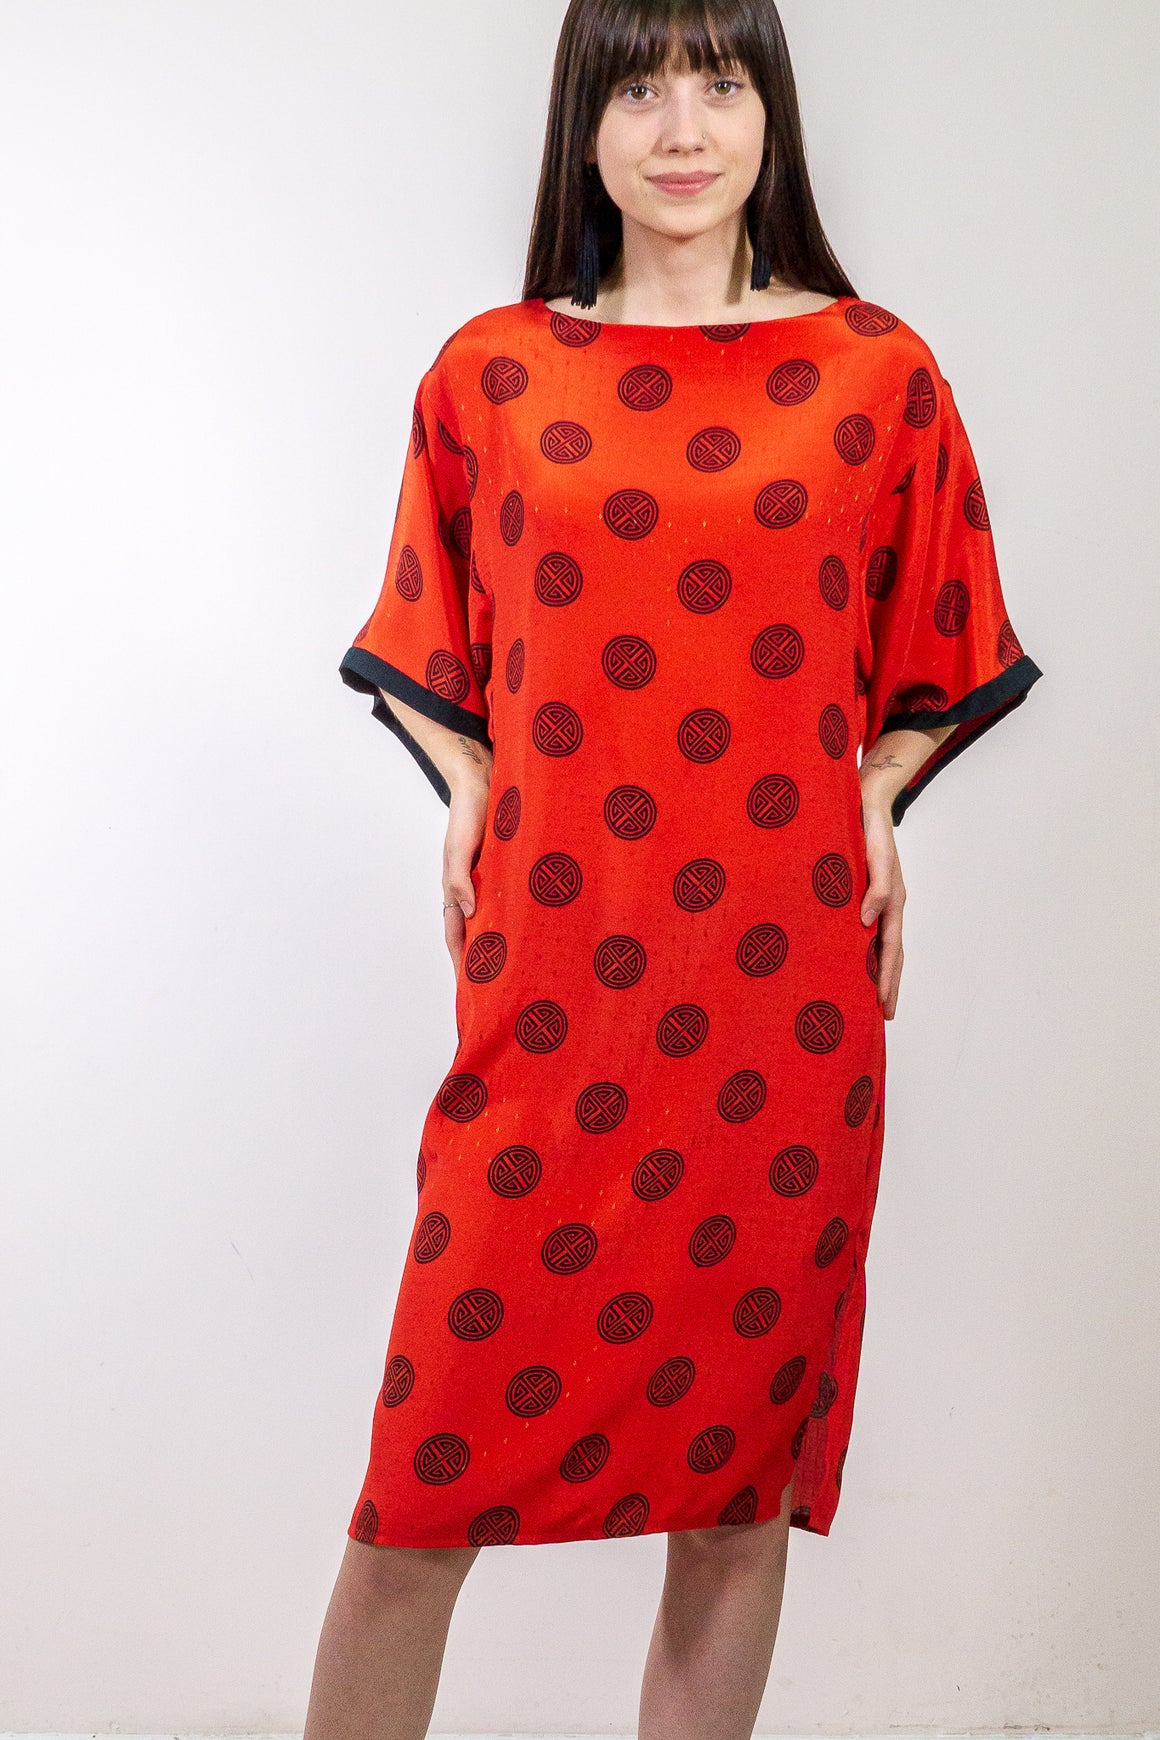 Vintage Asian Rayon Dress - The Canyon